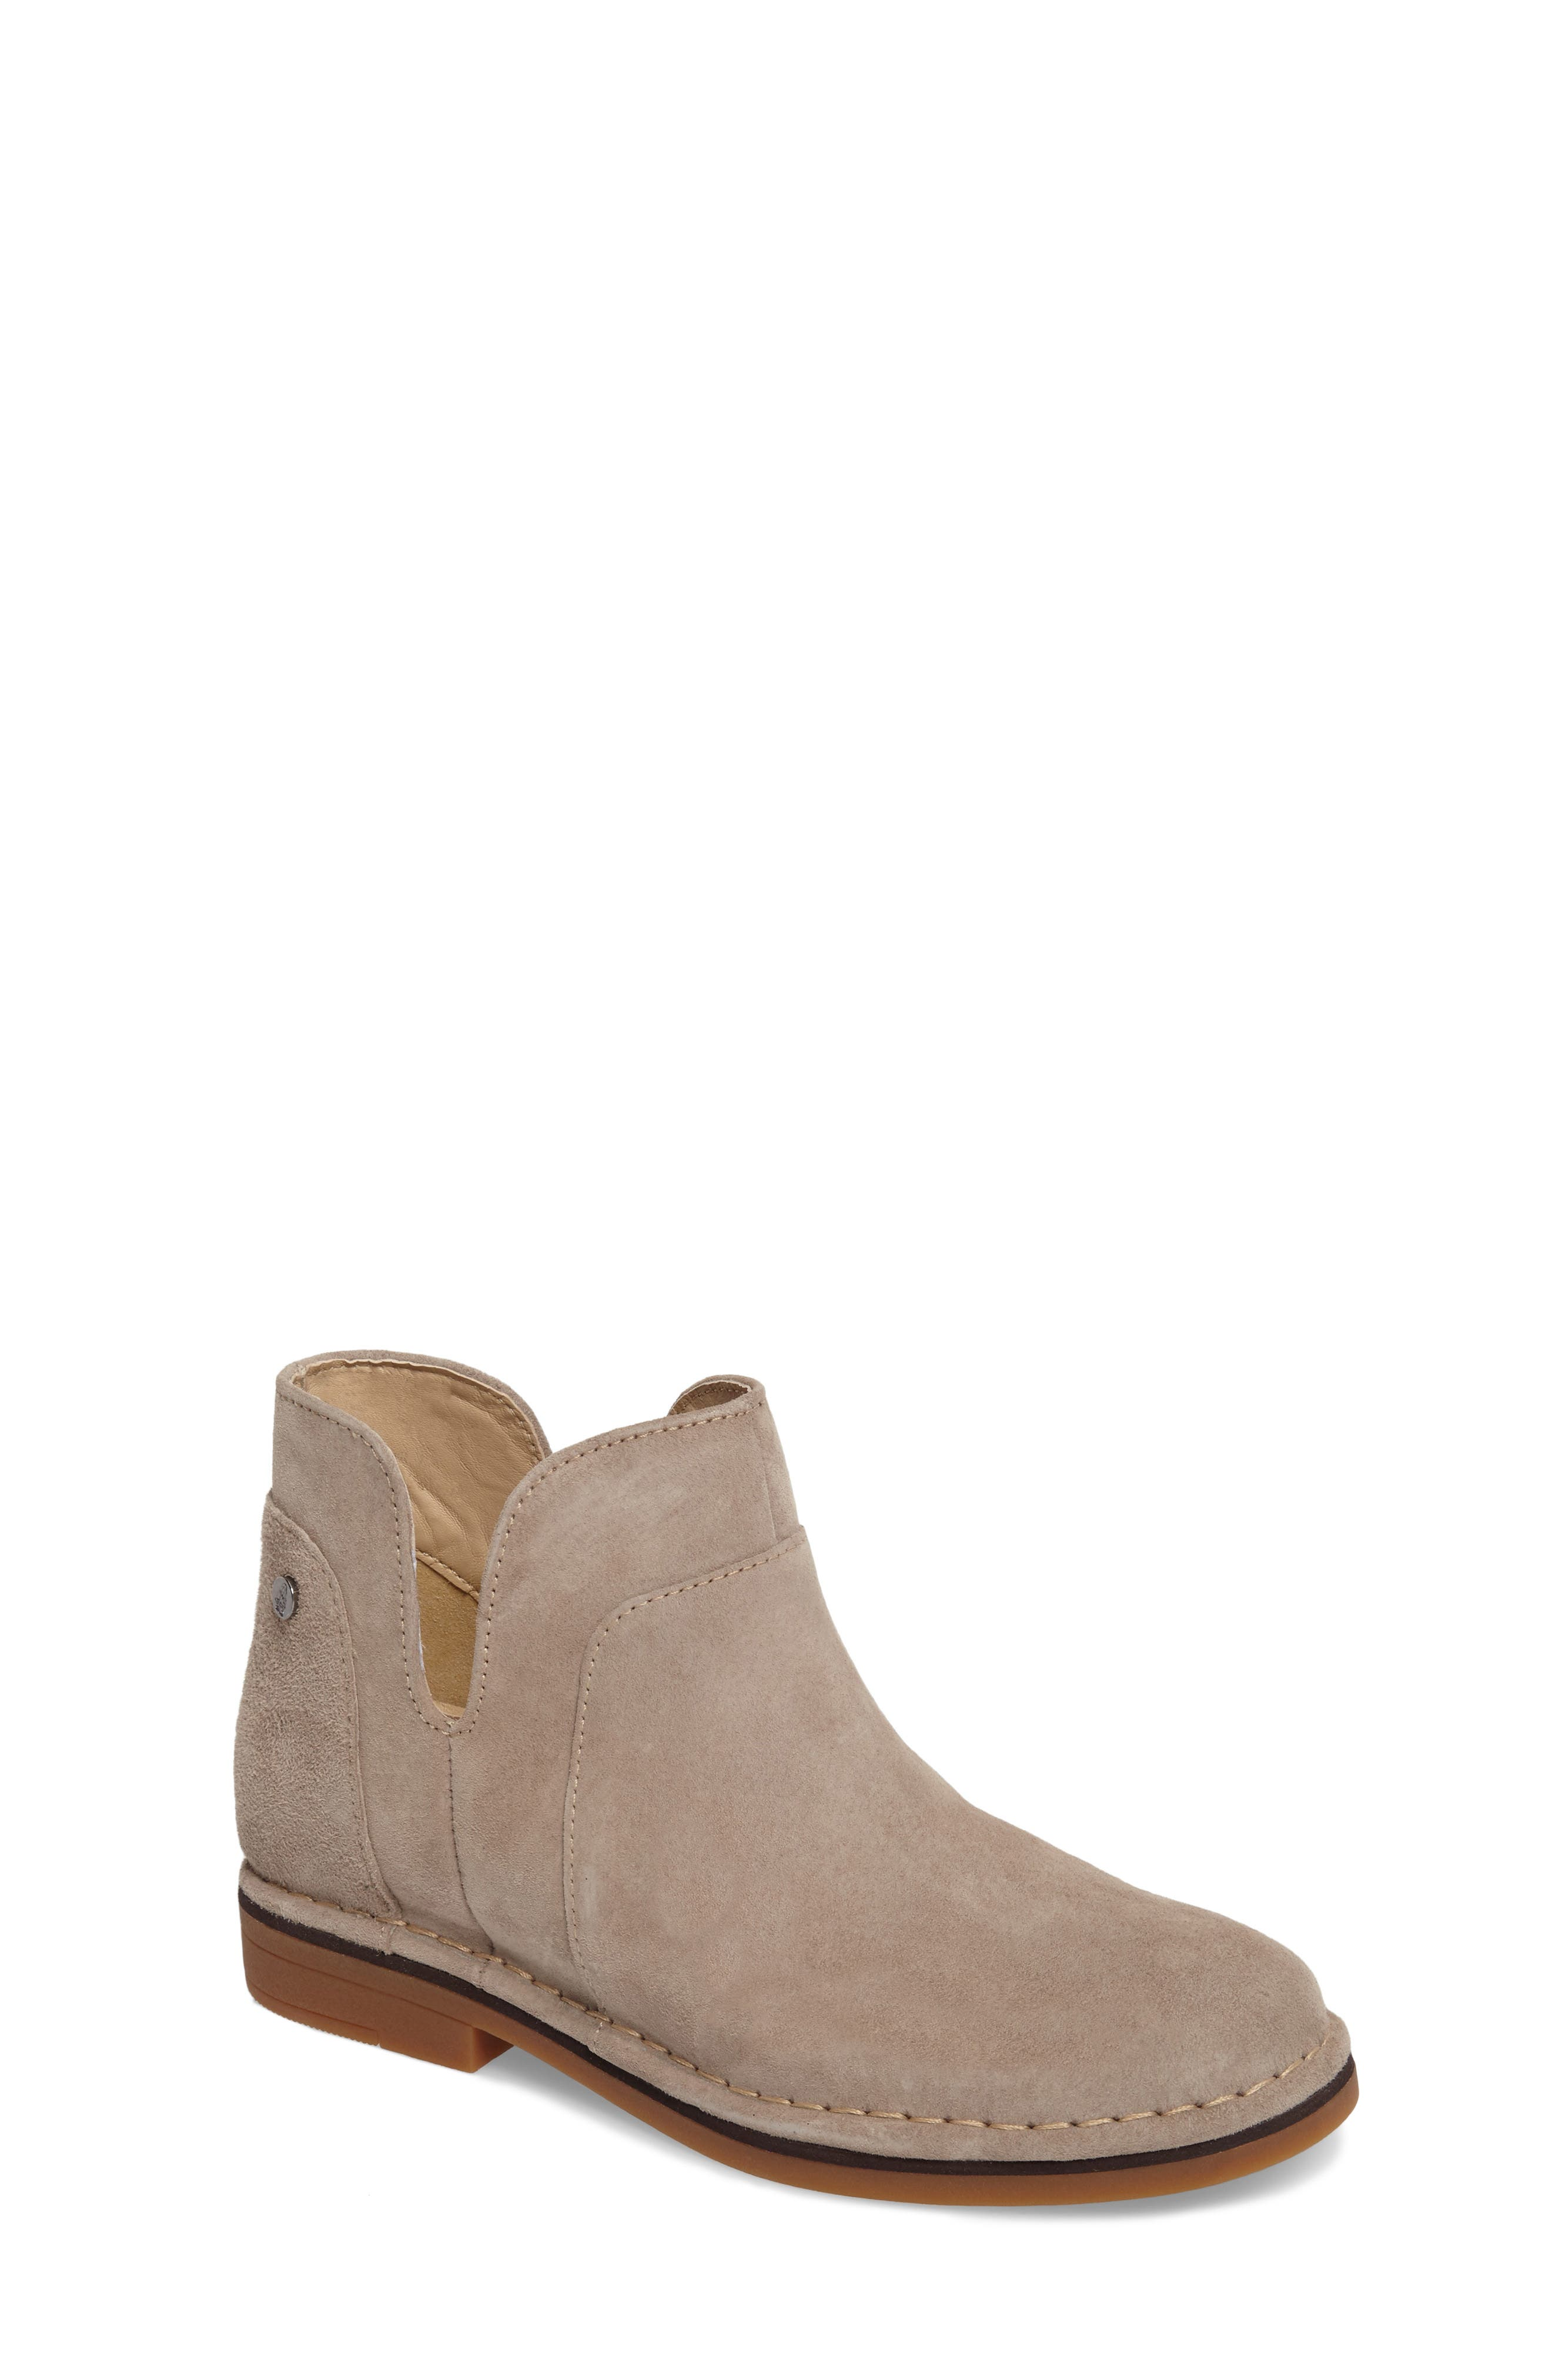 Claudia Catelyn Bootie,                             Main thumbnail 2, color,